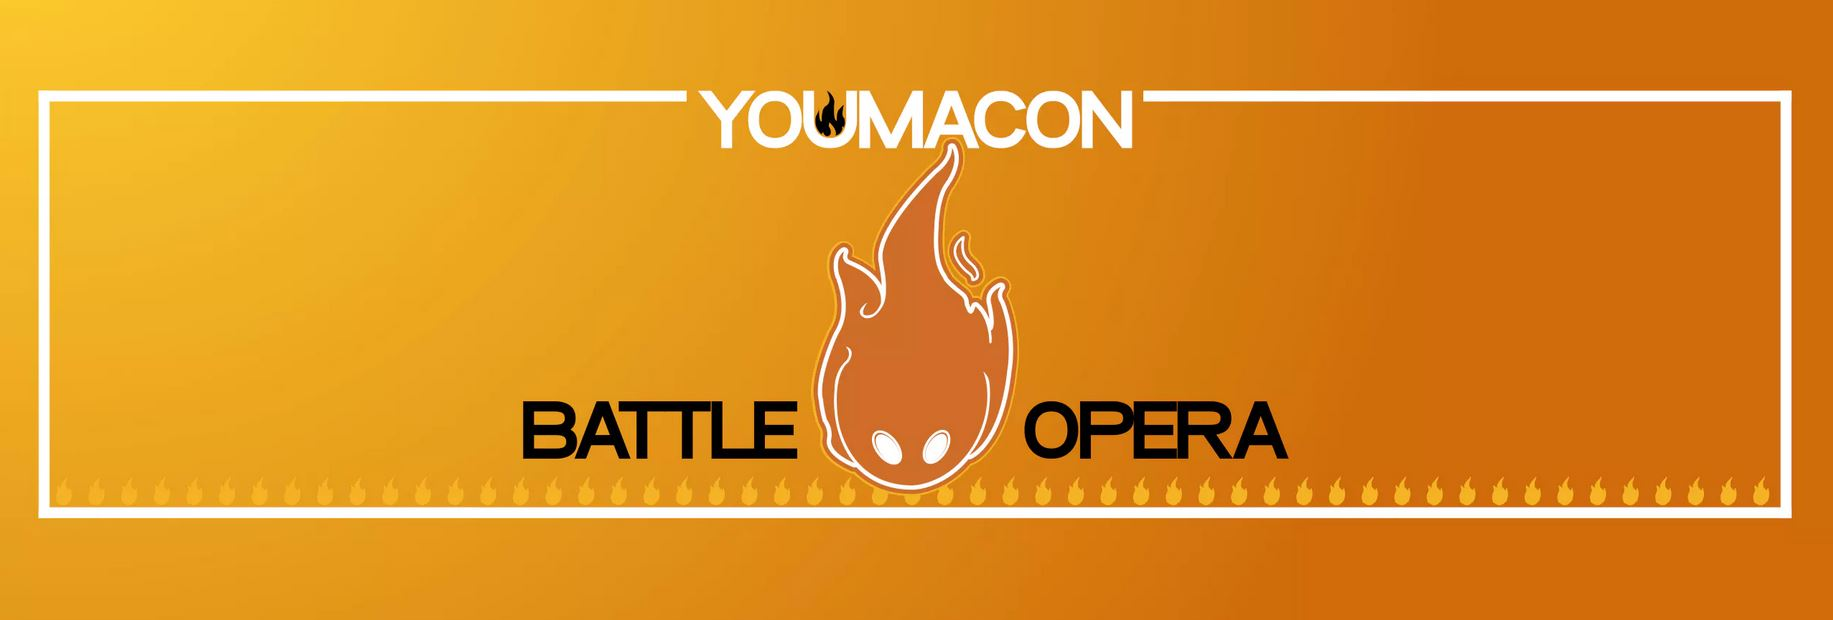 Youmacon Battle Opera.JPG